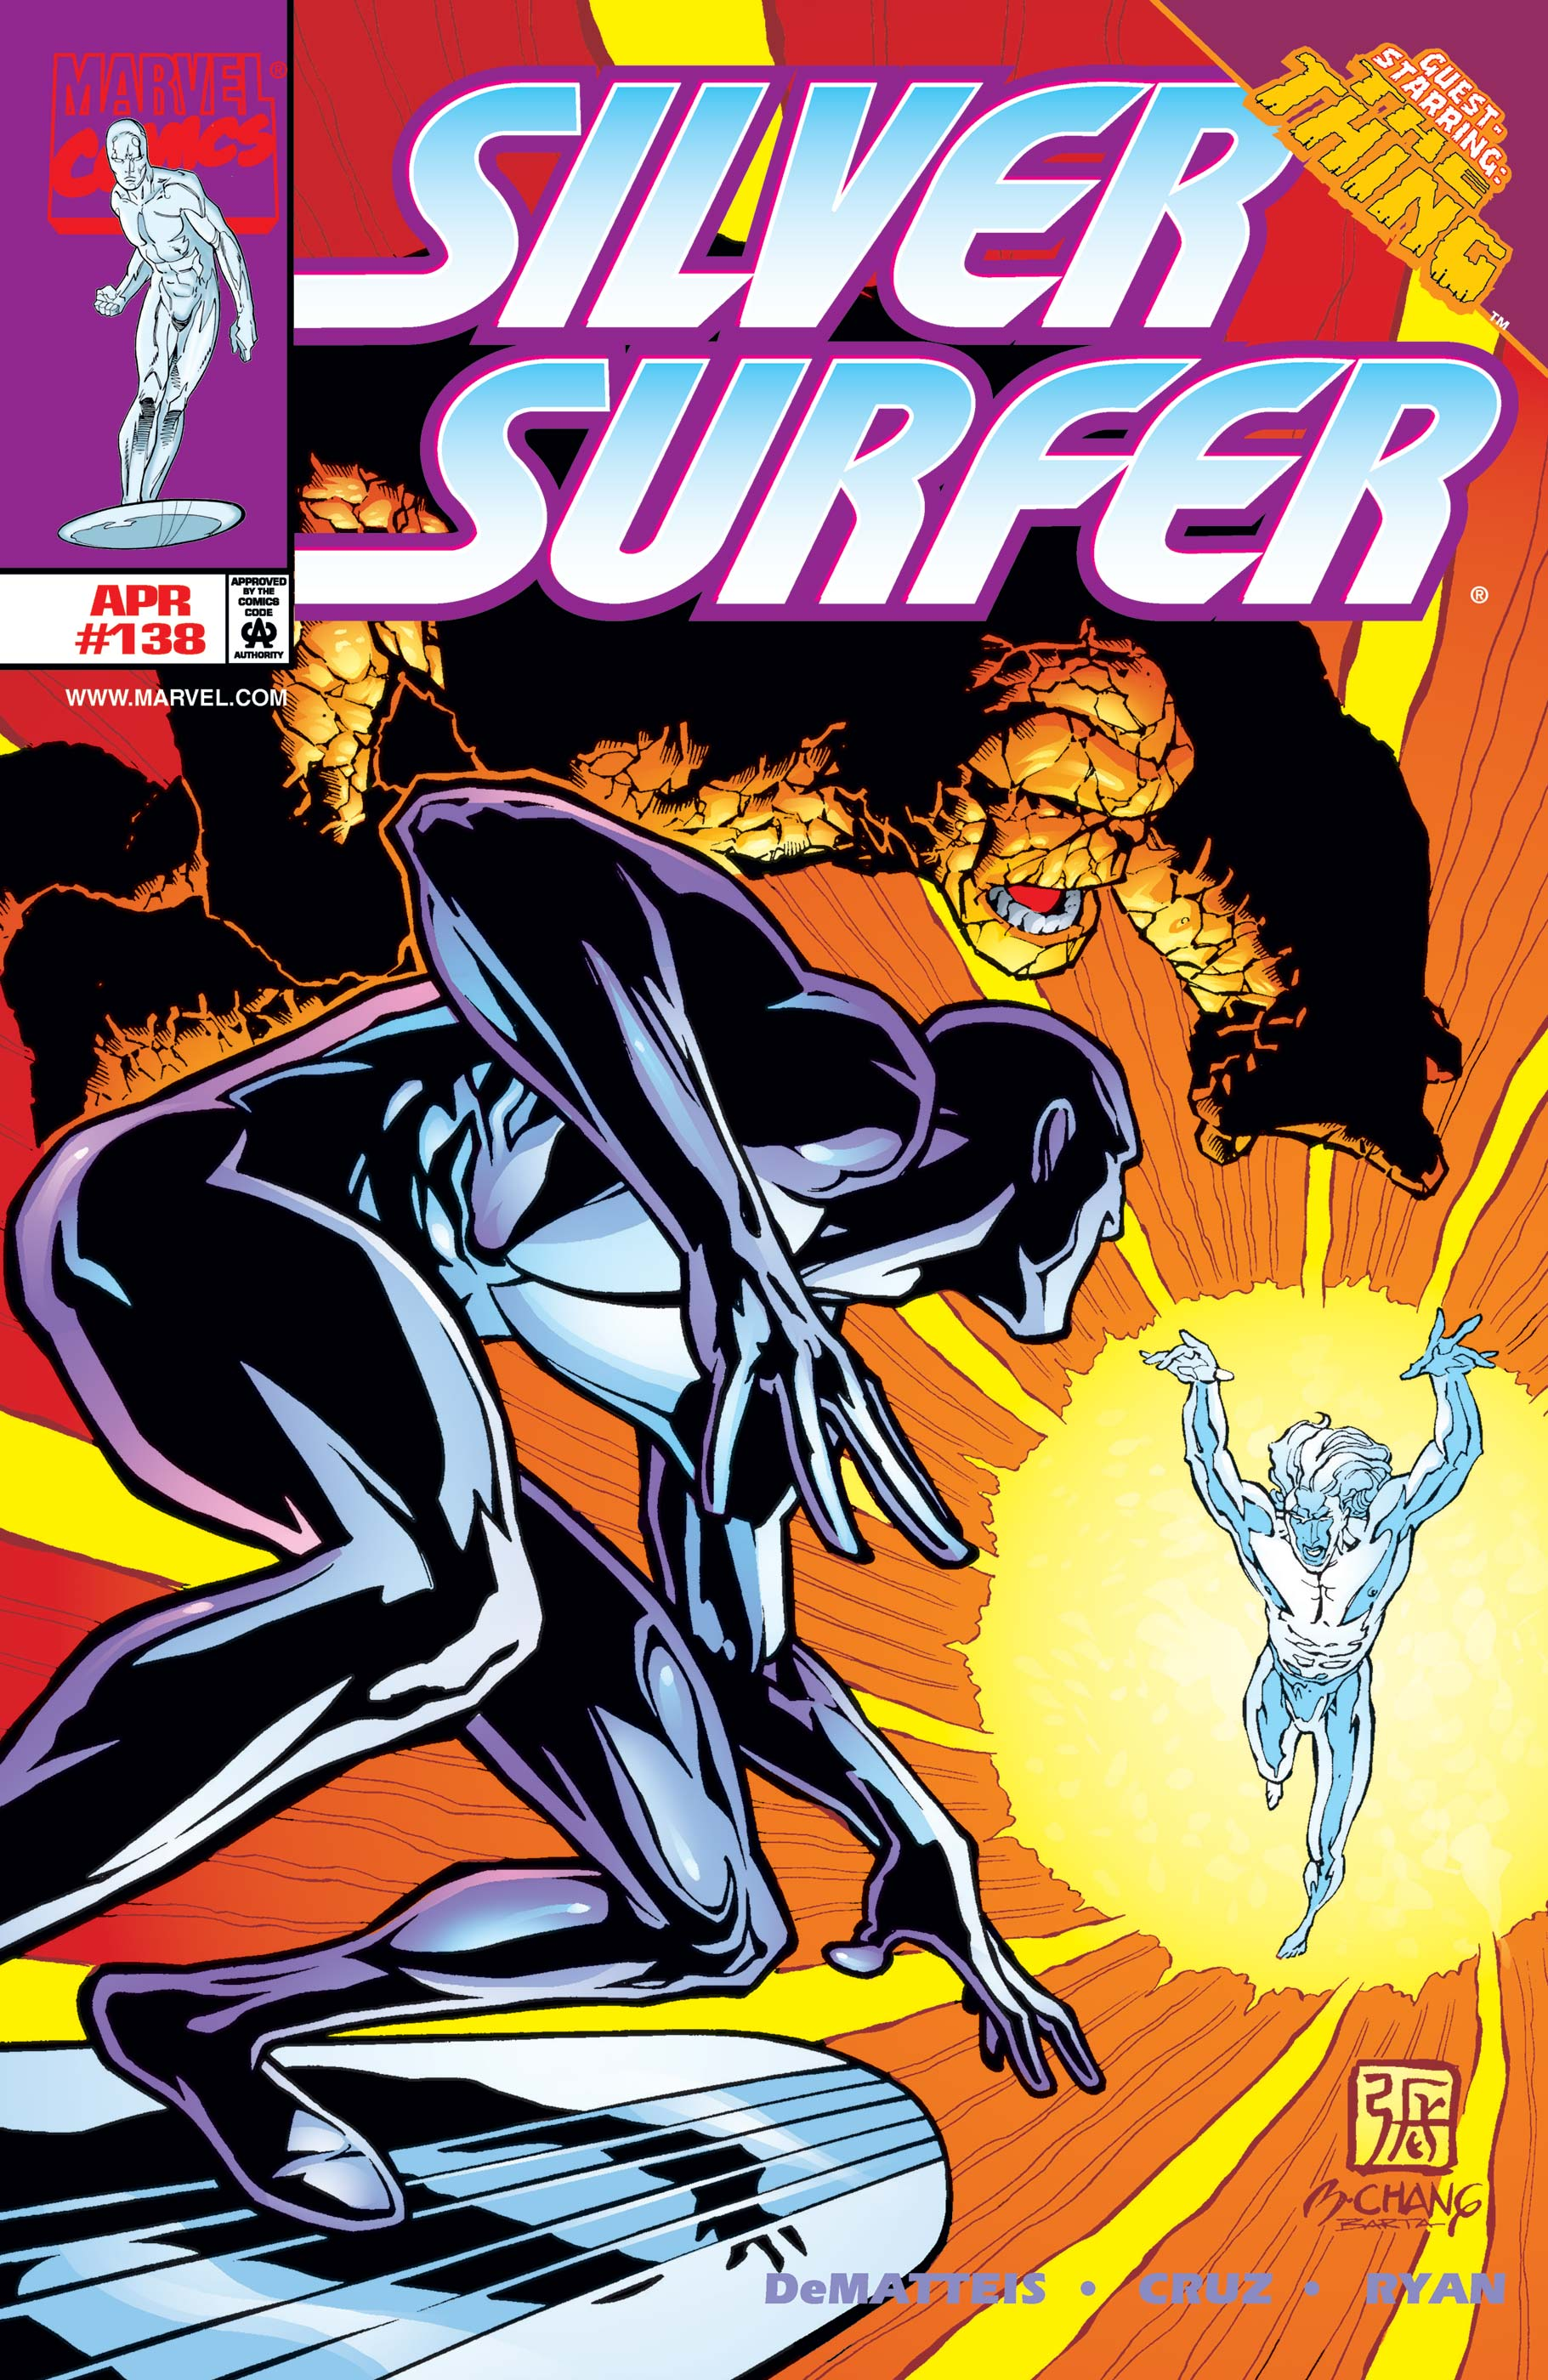 Silver Surfer (1987) #138